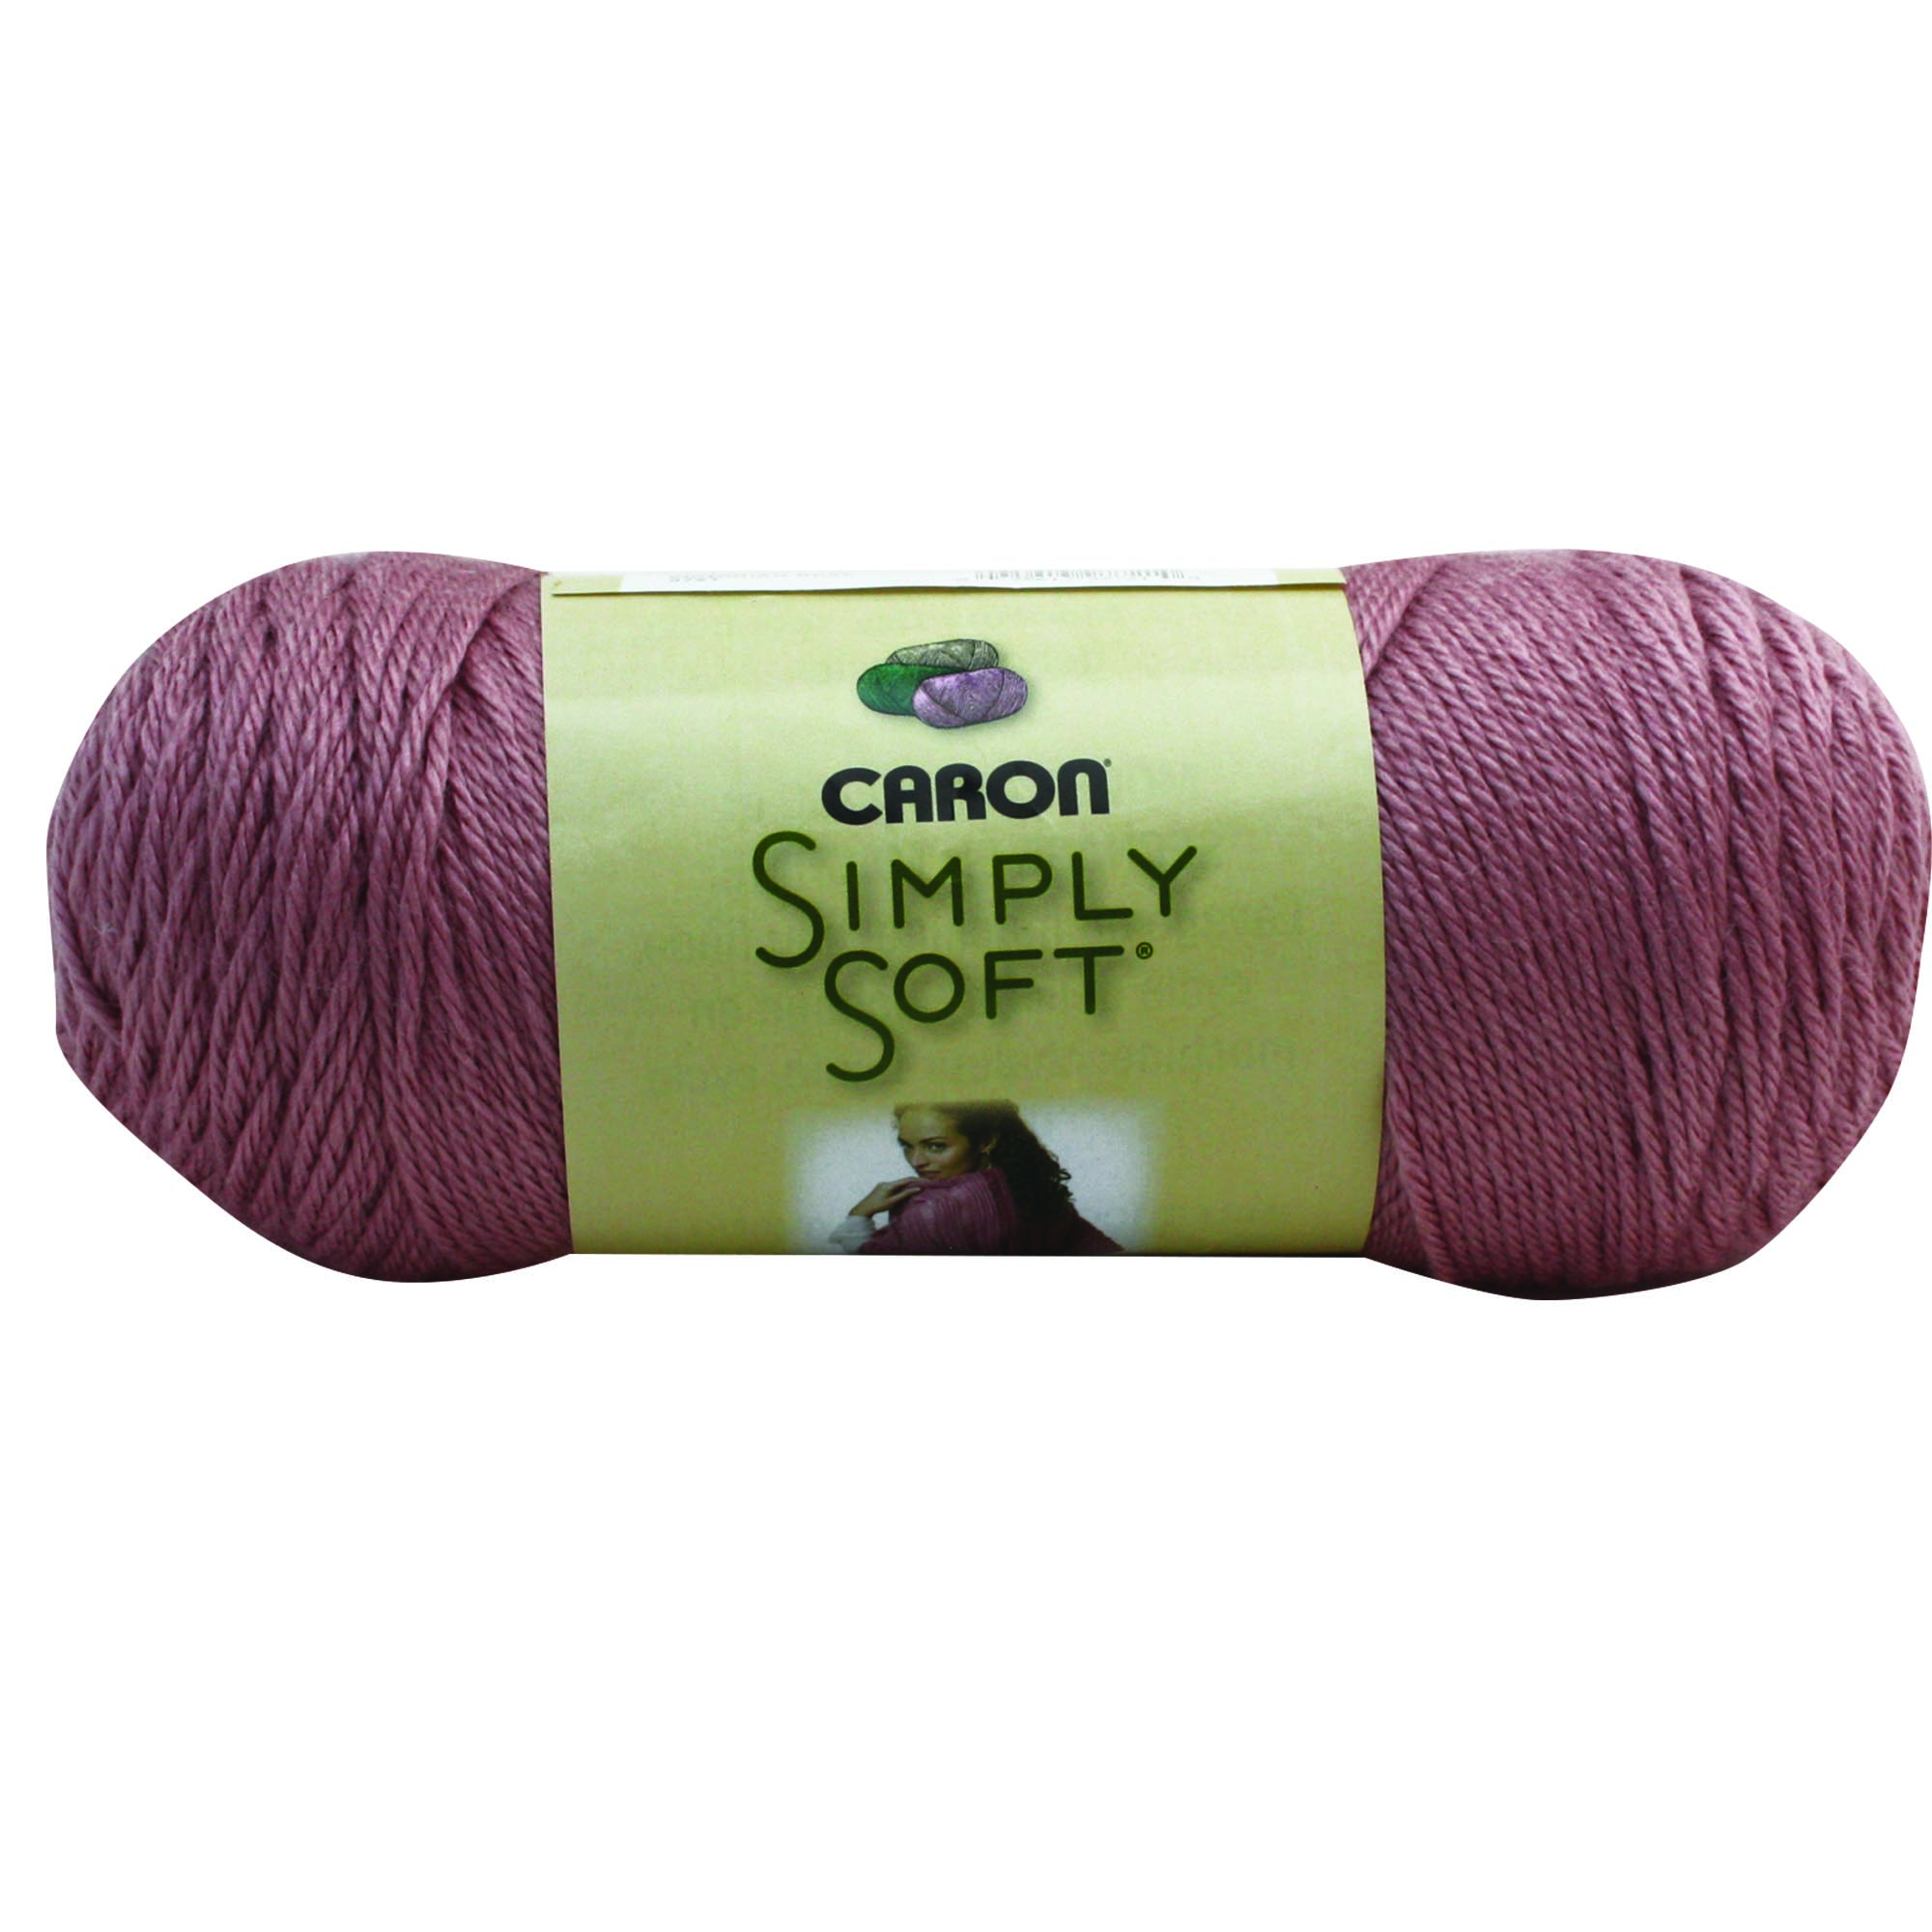 Caron Simply Soft Victorian Rose 170g - 6oz